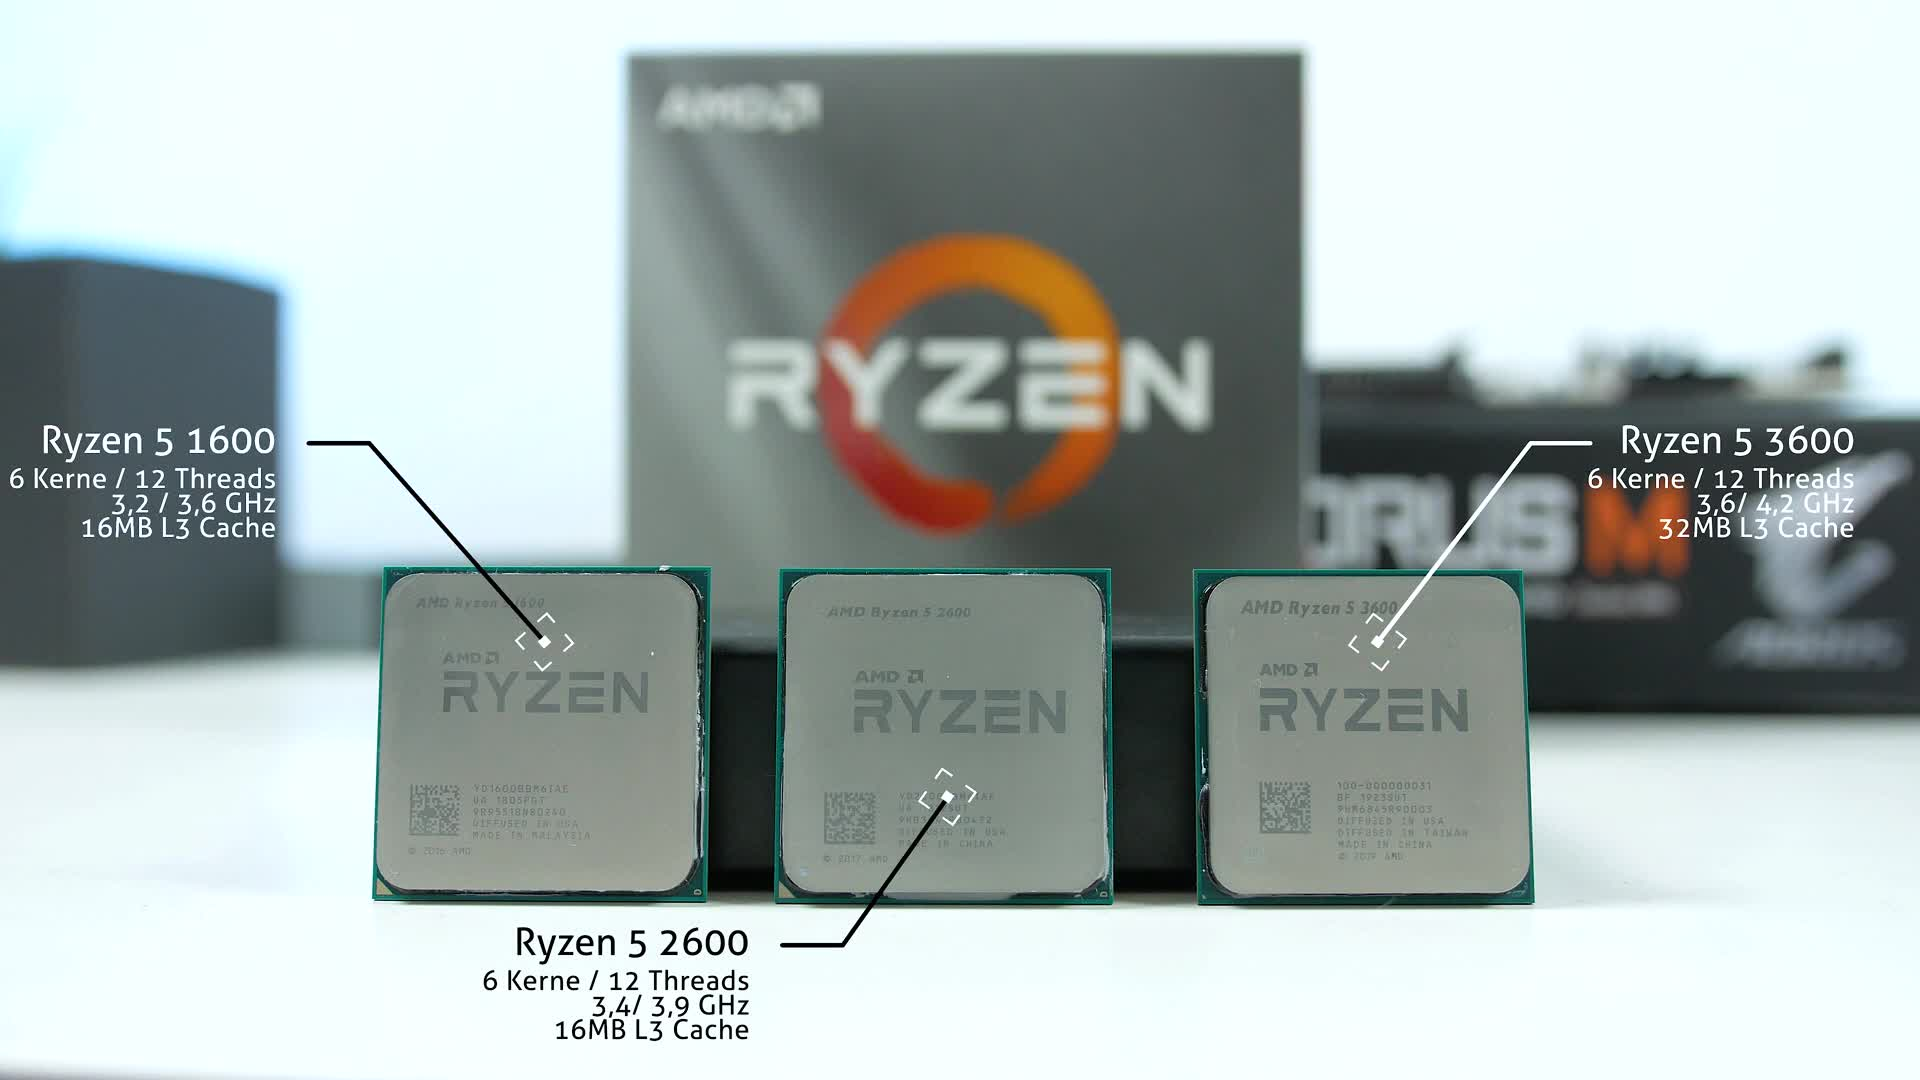 Prozessor, Cpu, Test, Amd, Ryzen, Zenchilli, Zenchillis Hardware Reviews, AMD Ryzen, Ryzen 5, Ryzen 5 3600